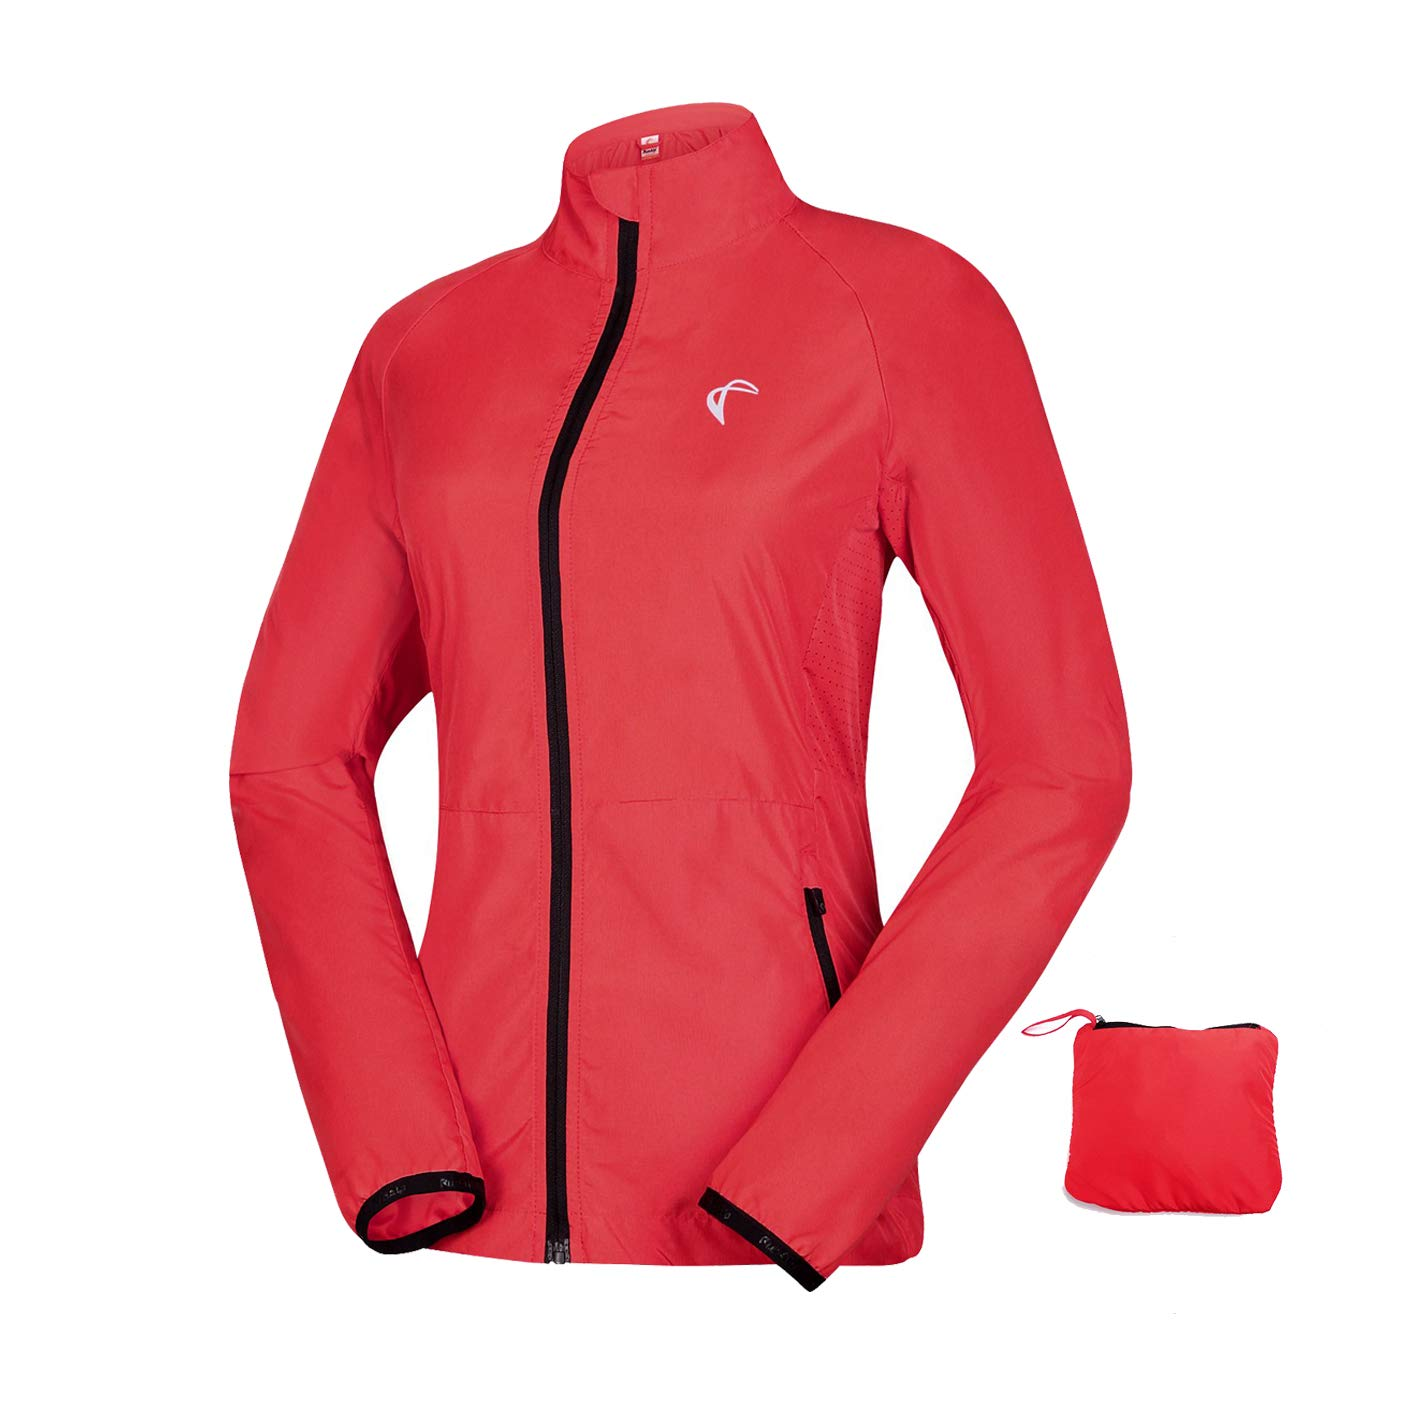 Women's Packable Windbreaker Jacket, Lightweight and Water Resistant, Active Cycling Running Skin Coat, Red L by Axen